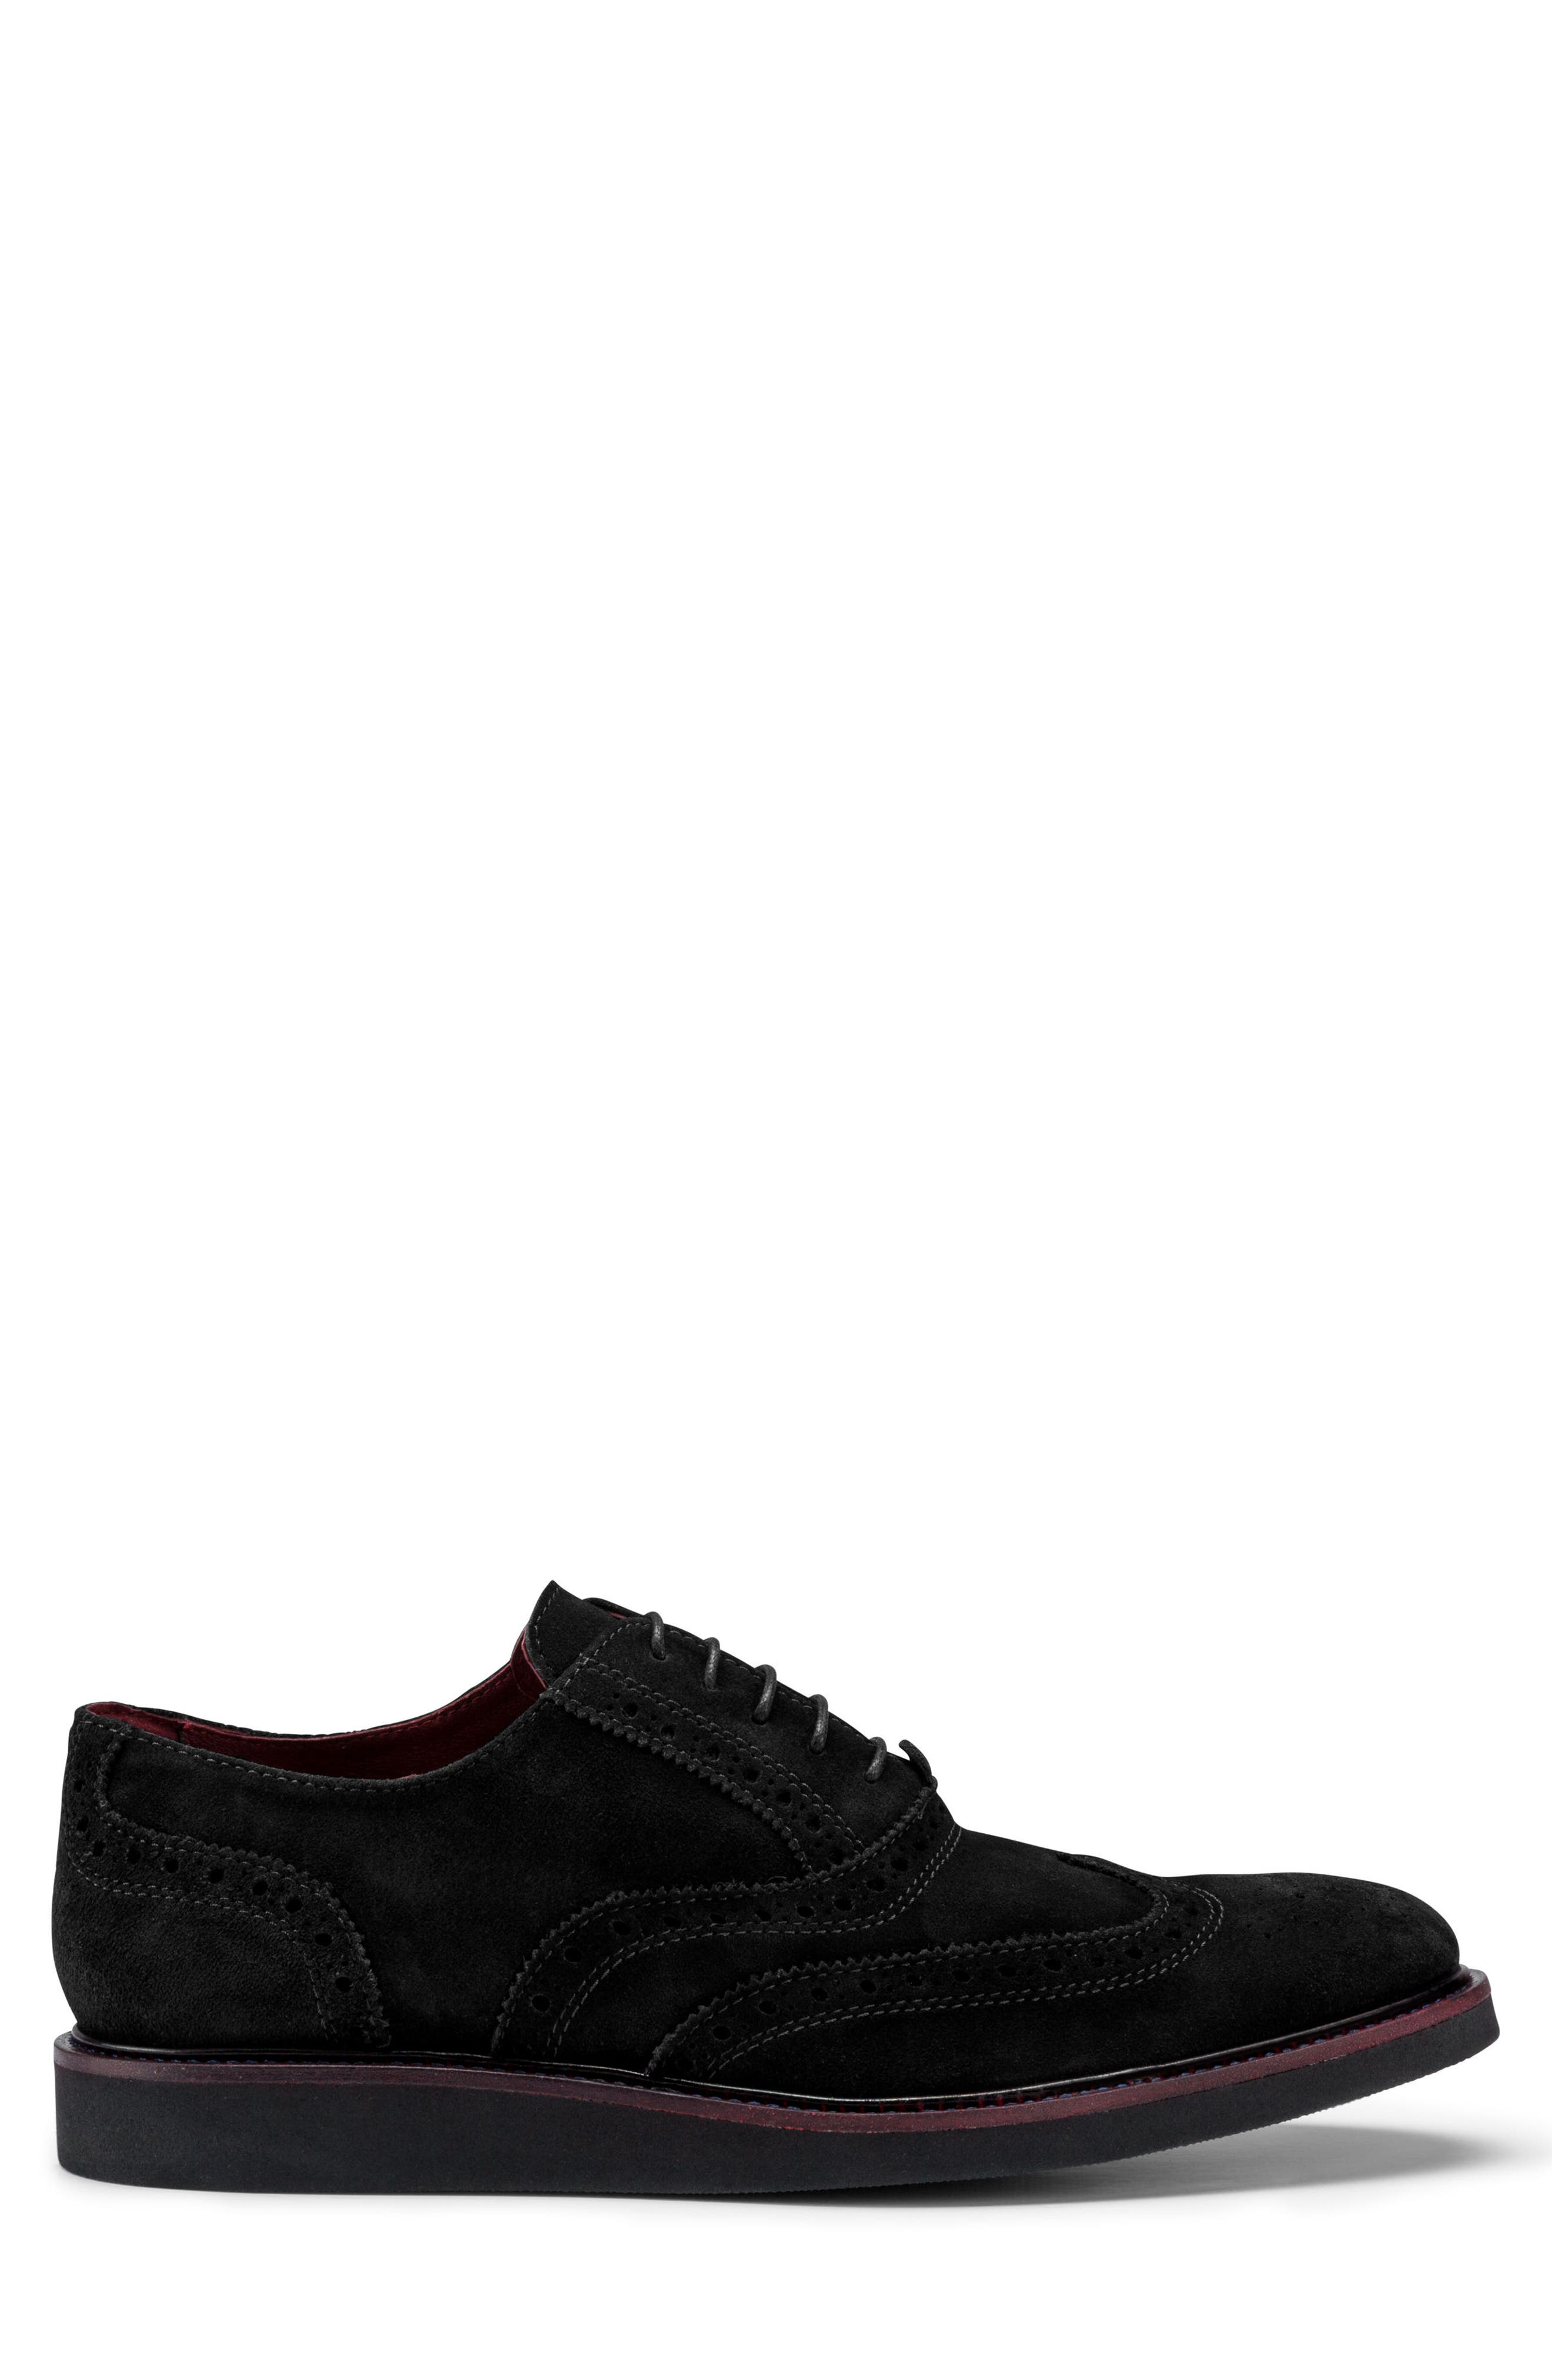 Siena Wingtip,                             Alternate thumbnail 3, color,                             Nero Suede